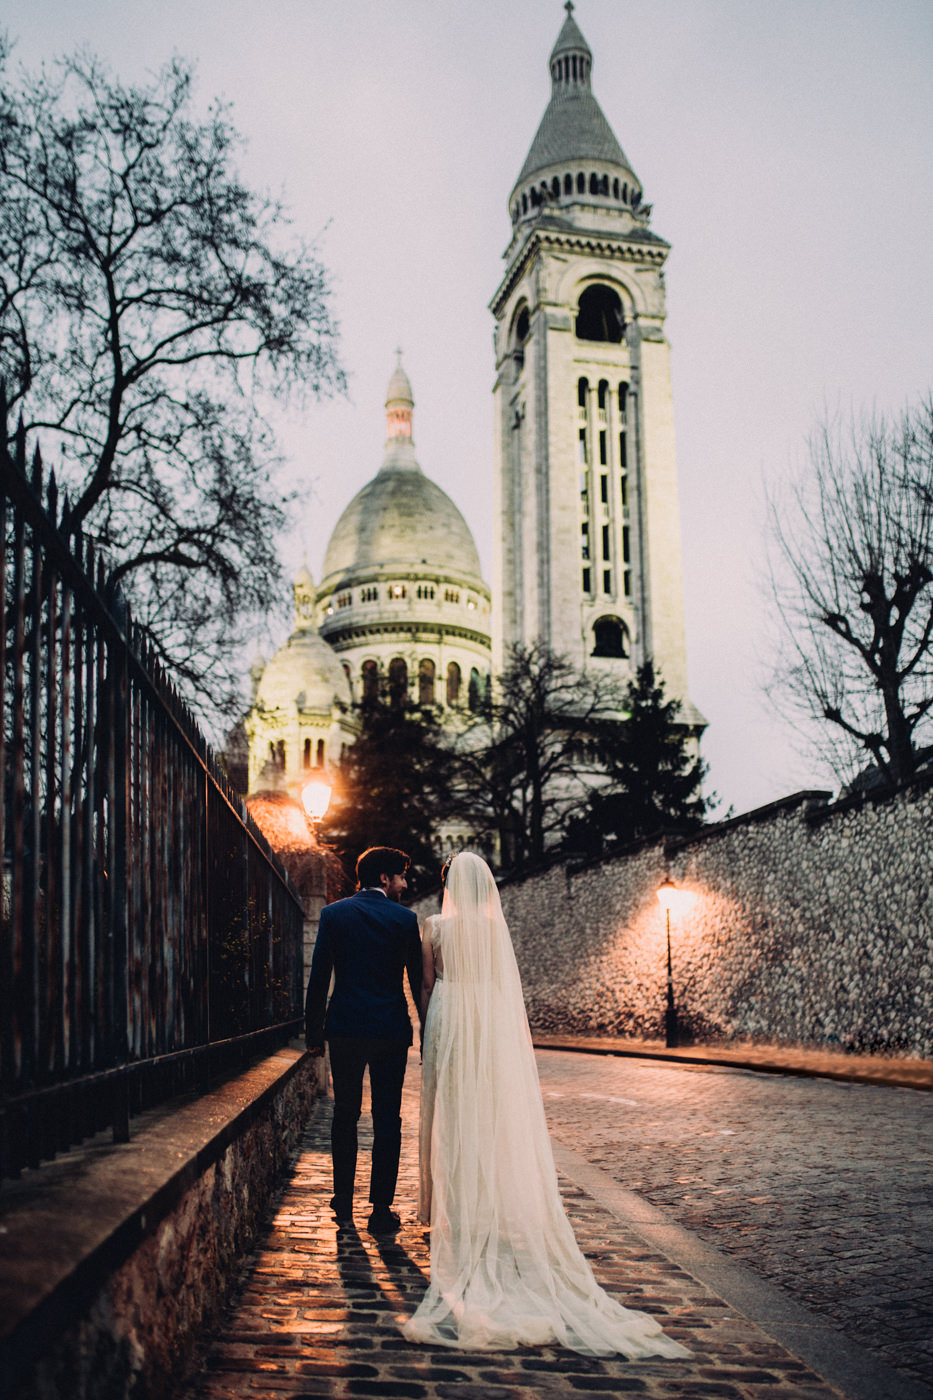 wedding in Montmartre Sacre coeur